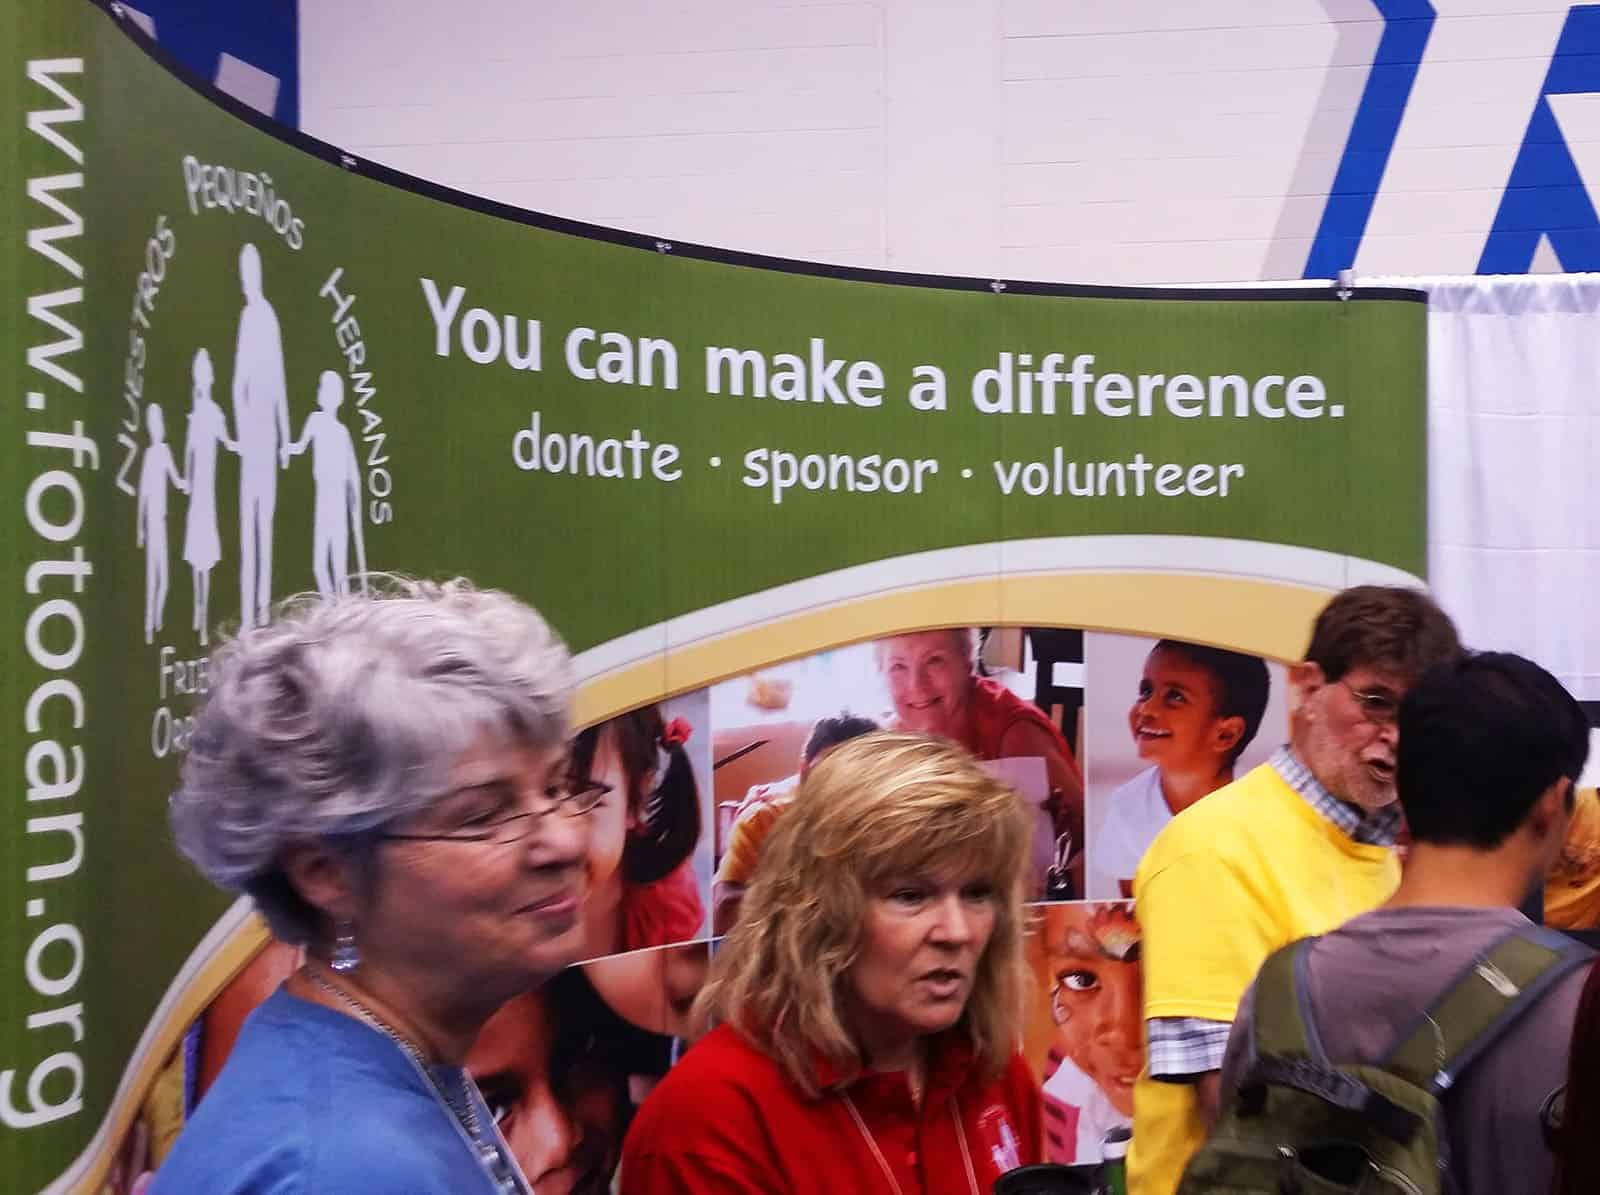 Voluntourism Opportunities at Go Global Expo in Toronto